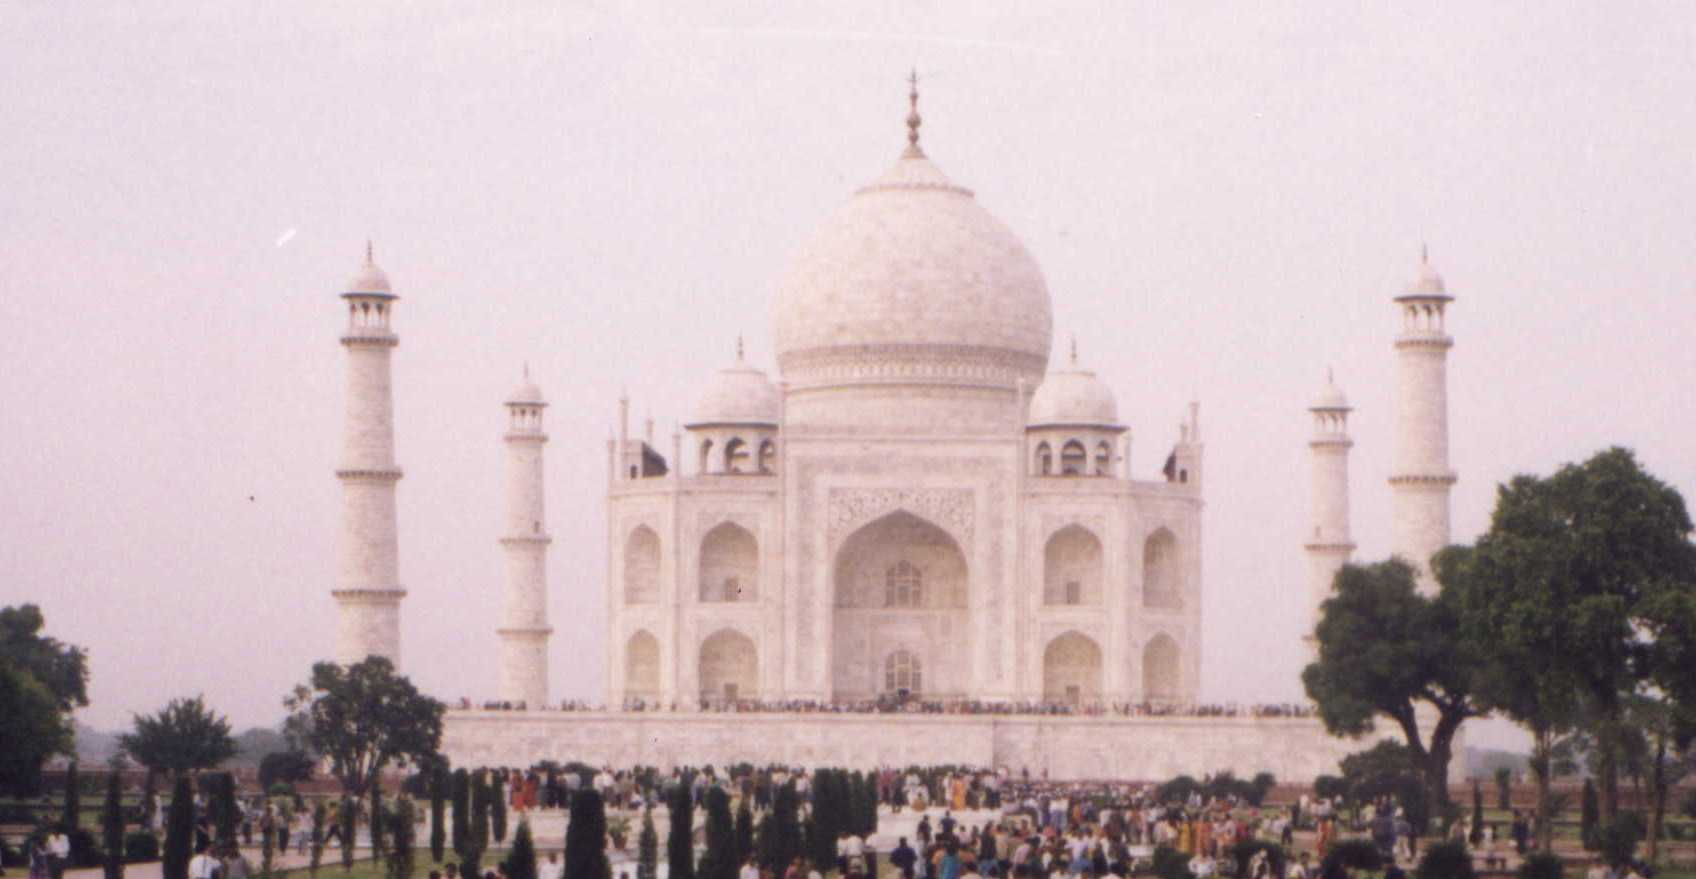 Enlarged image of the Taj Mahal